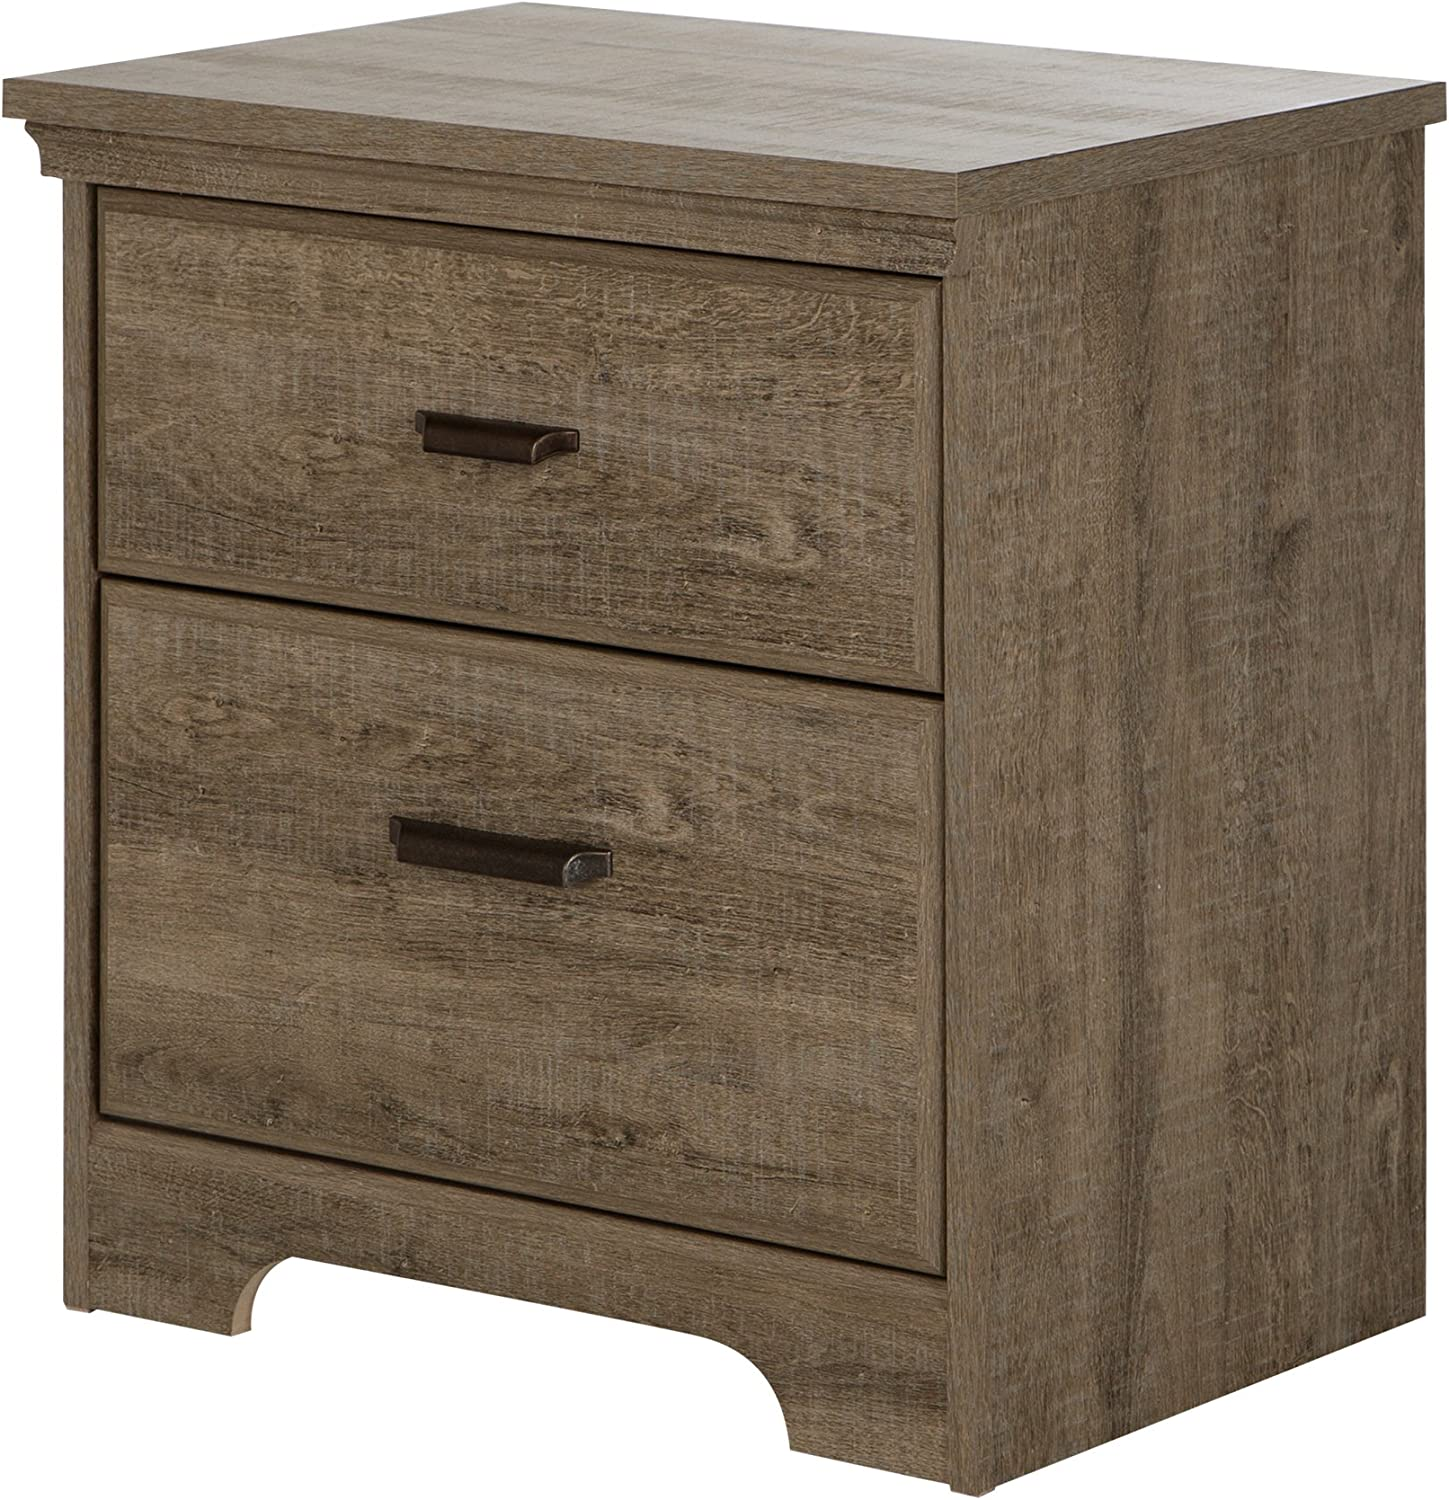 South Shore Furniture Versa 2-Drawer Nightstand, Weathered Oak